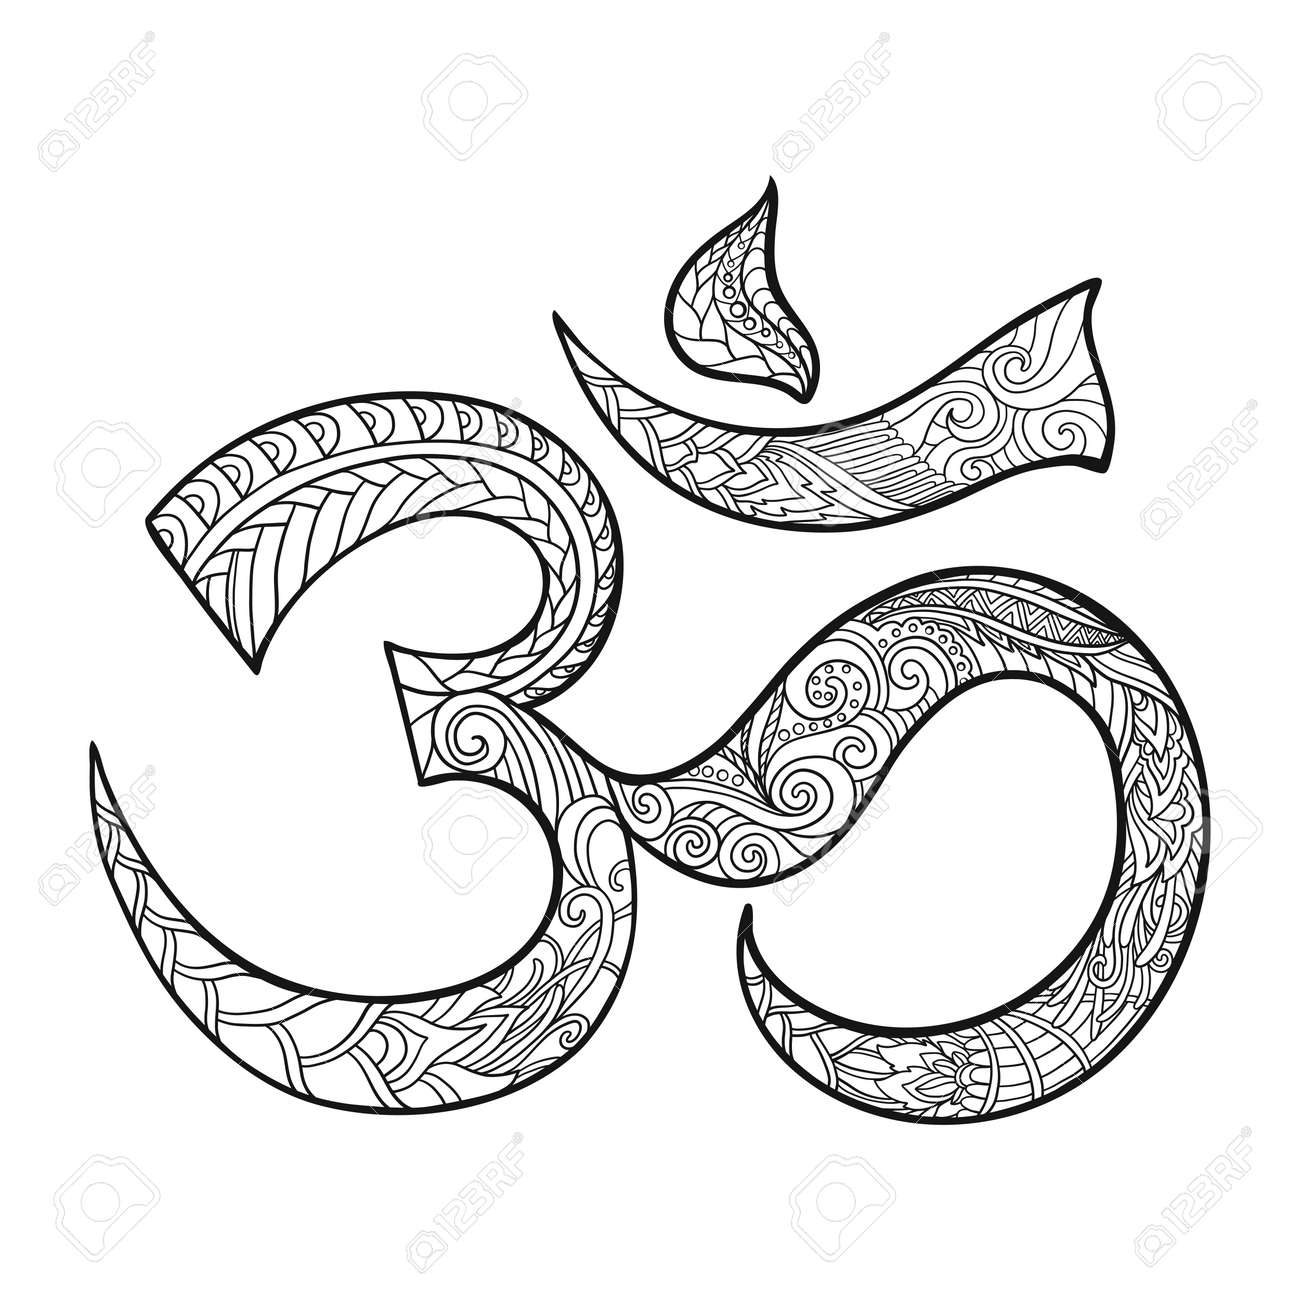 Om drawing 100 images show om nom stories how to draw mobibase om drawing ohm symbol indian diwali spiritual sign om with high details biocorpaavc Choice Image